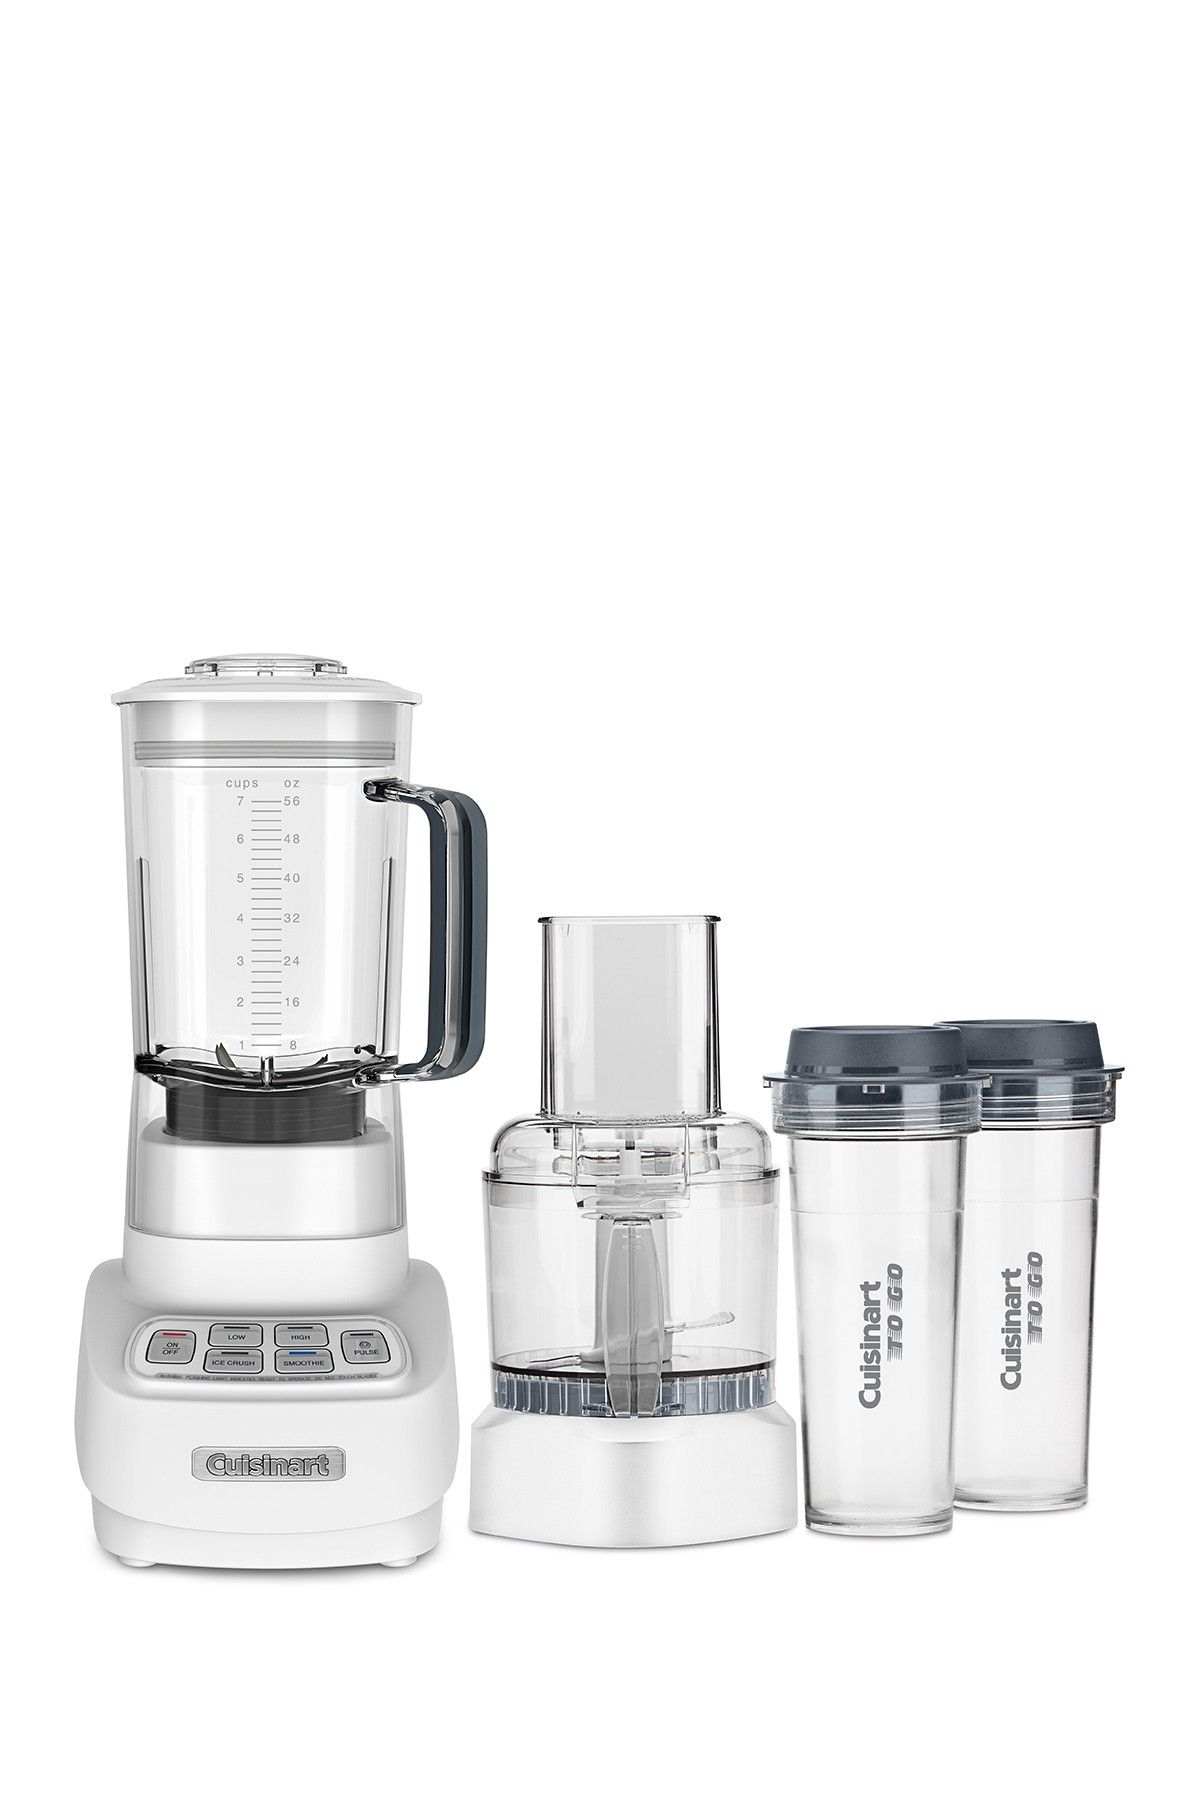 Cuisinart Velocity Ultra Trio Blender Food Processor White Is Now 19 Off Free Shipping On Orders Over 100 Food Processor Recipes Blender Food Processor Food Processor Reviews